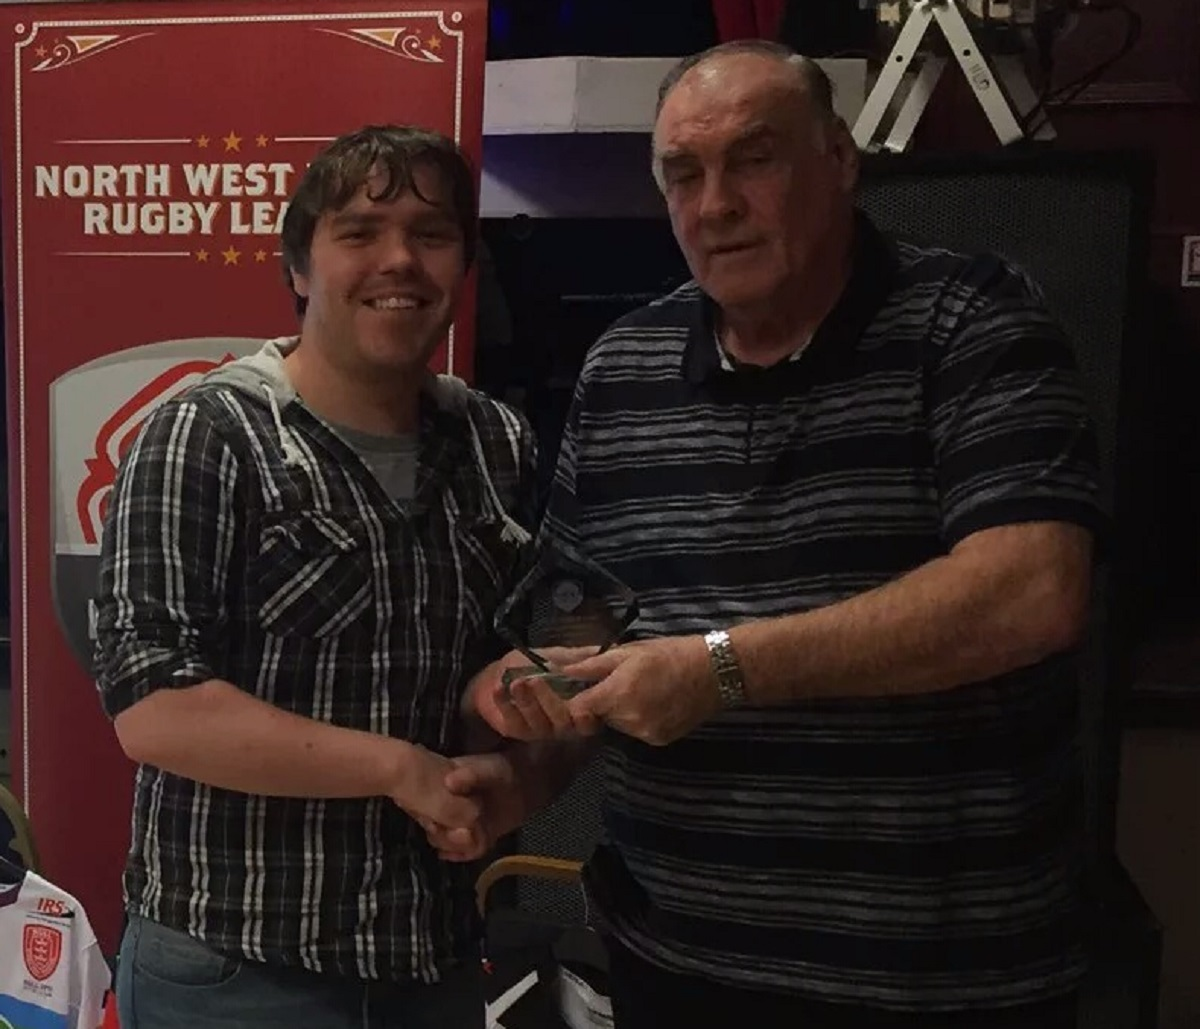 Bury Broncos chairman Ryan Lewis, left, receives the Steve Prescott Award at the North West Men's League dinner on behalf of the club (57460969)